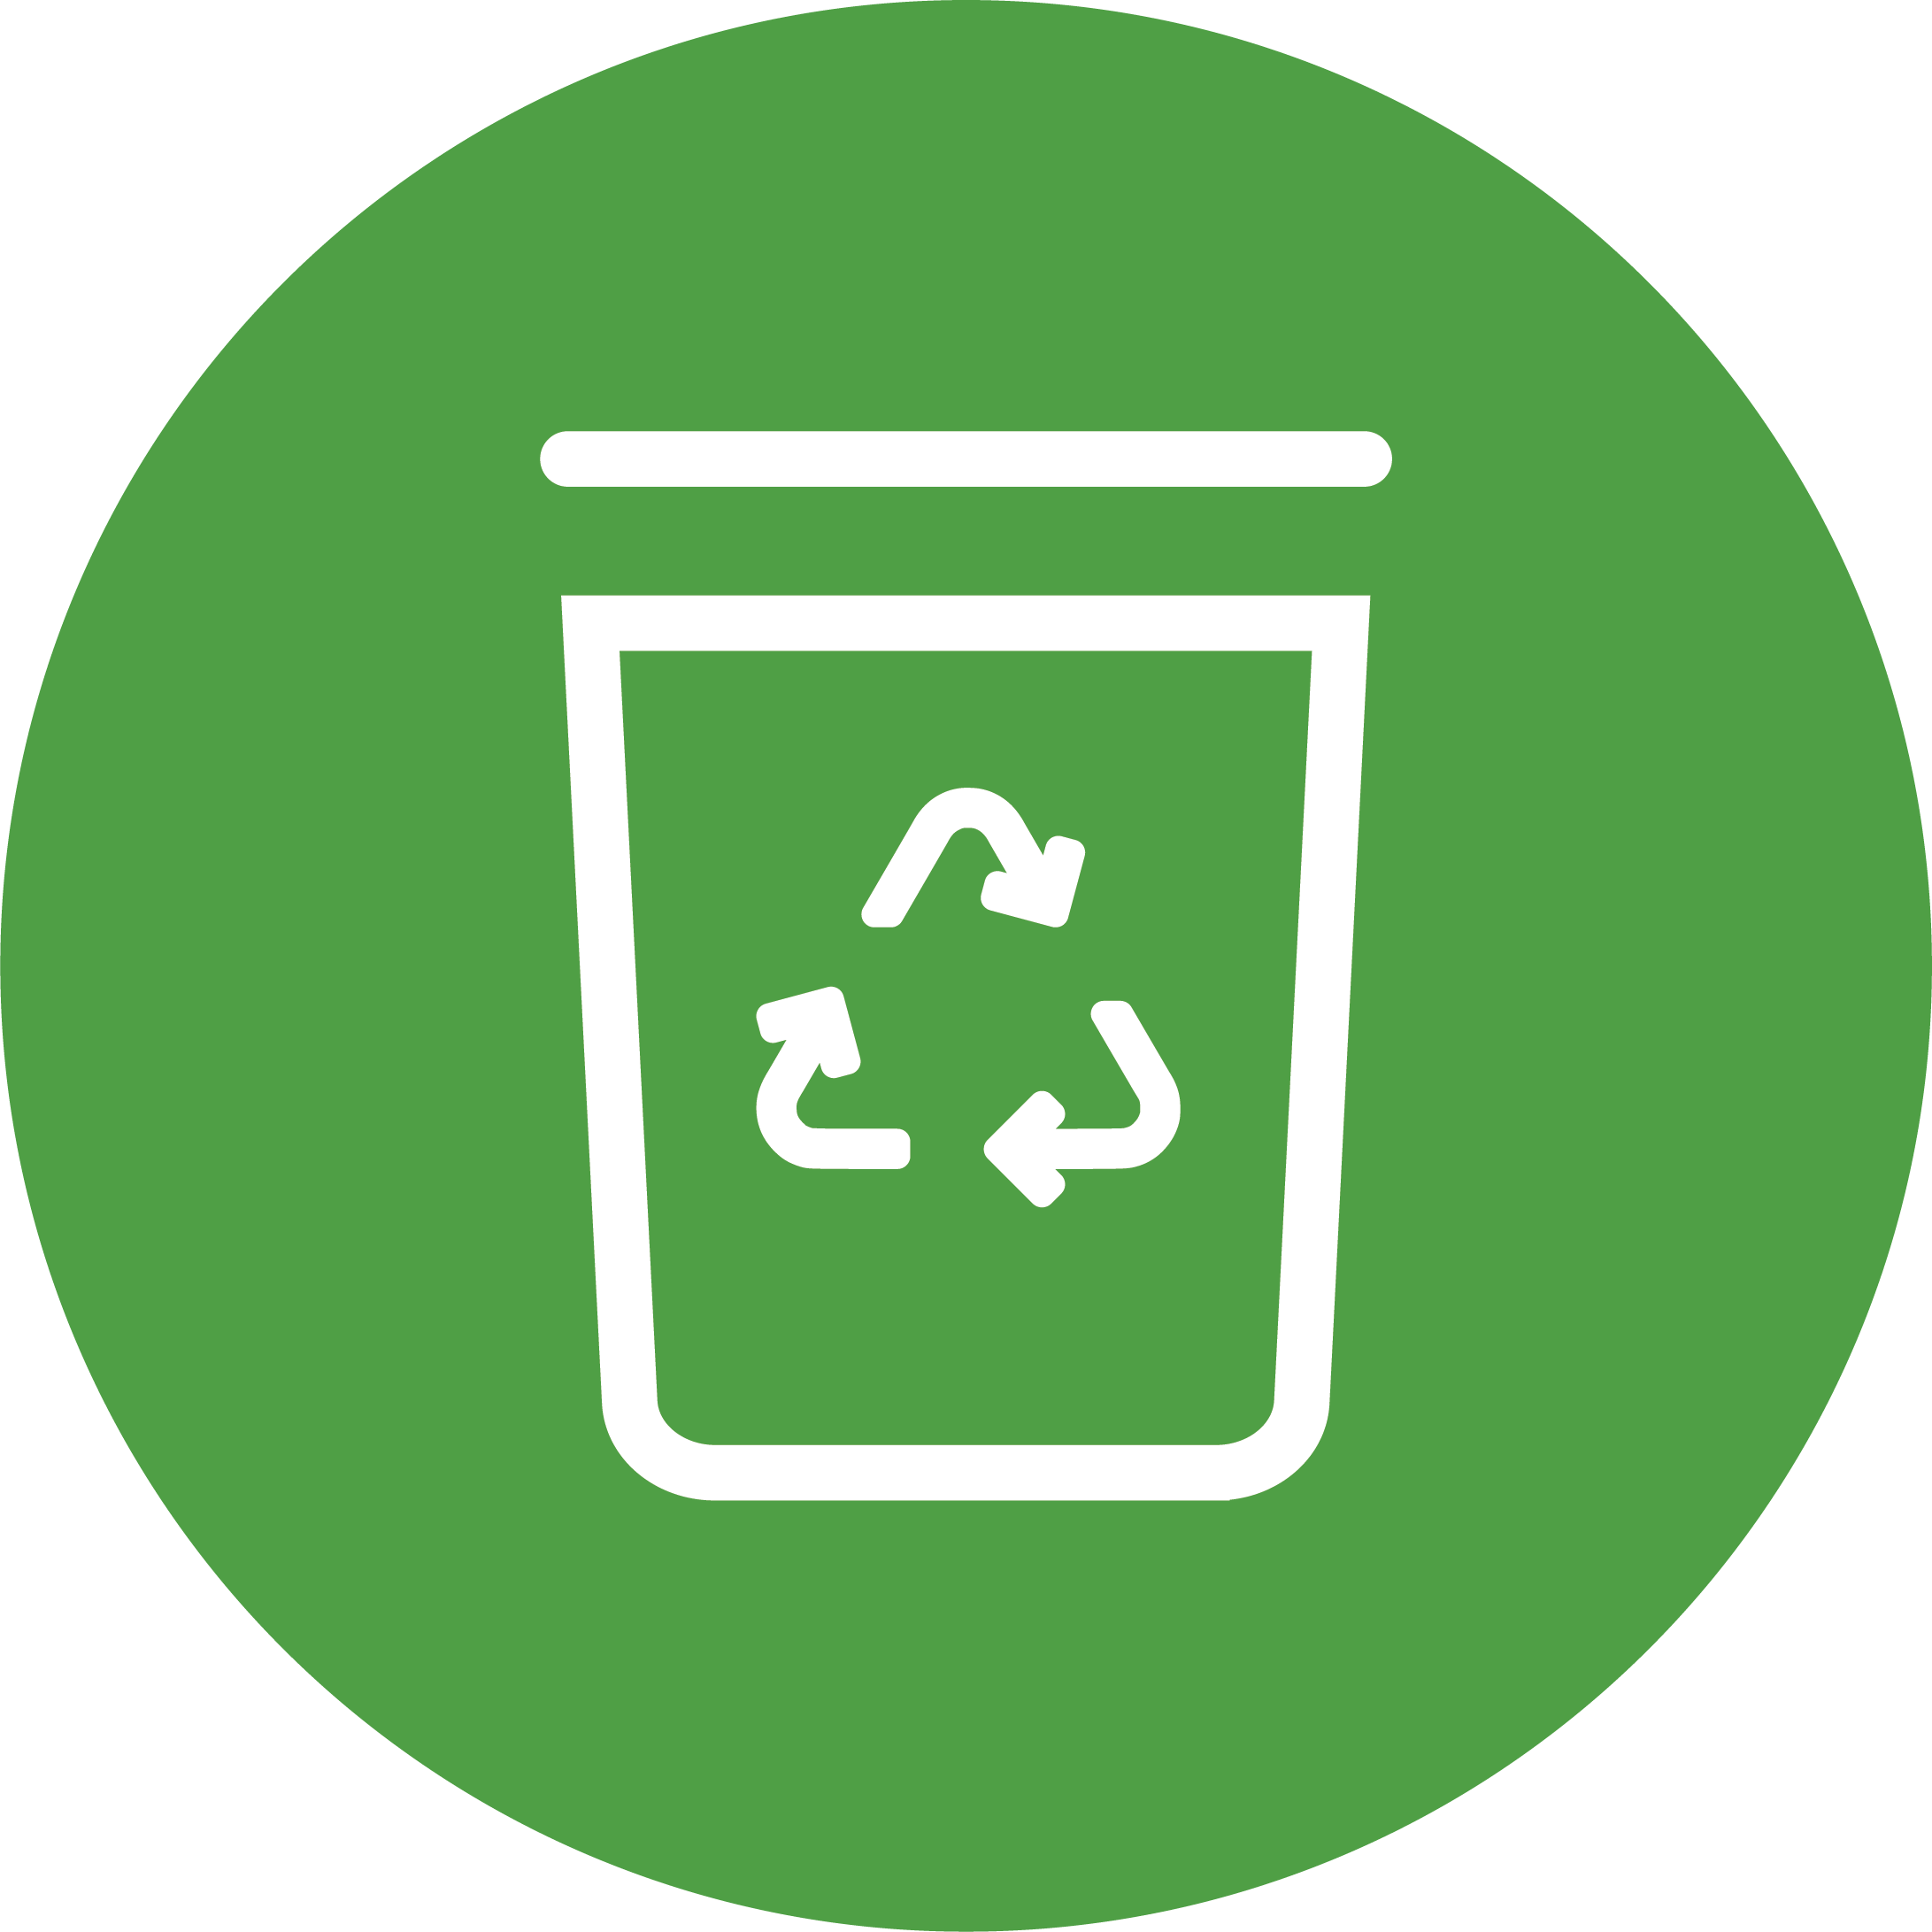 BBSC_Rubbish-Recycling_Icon.png